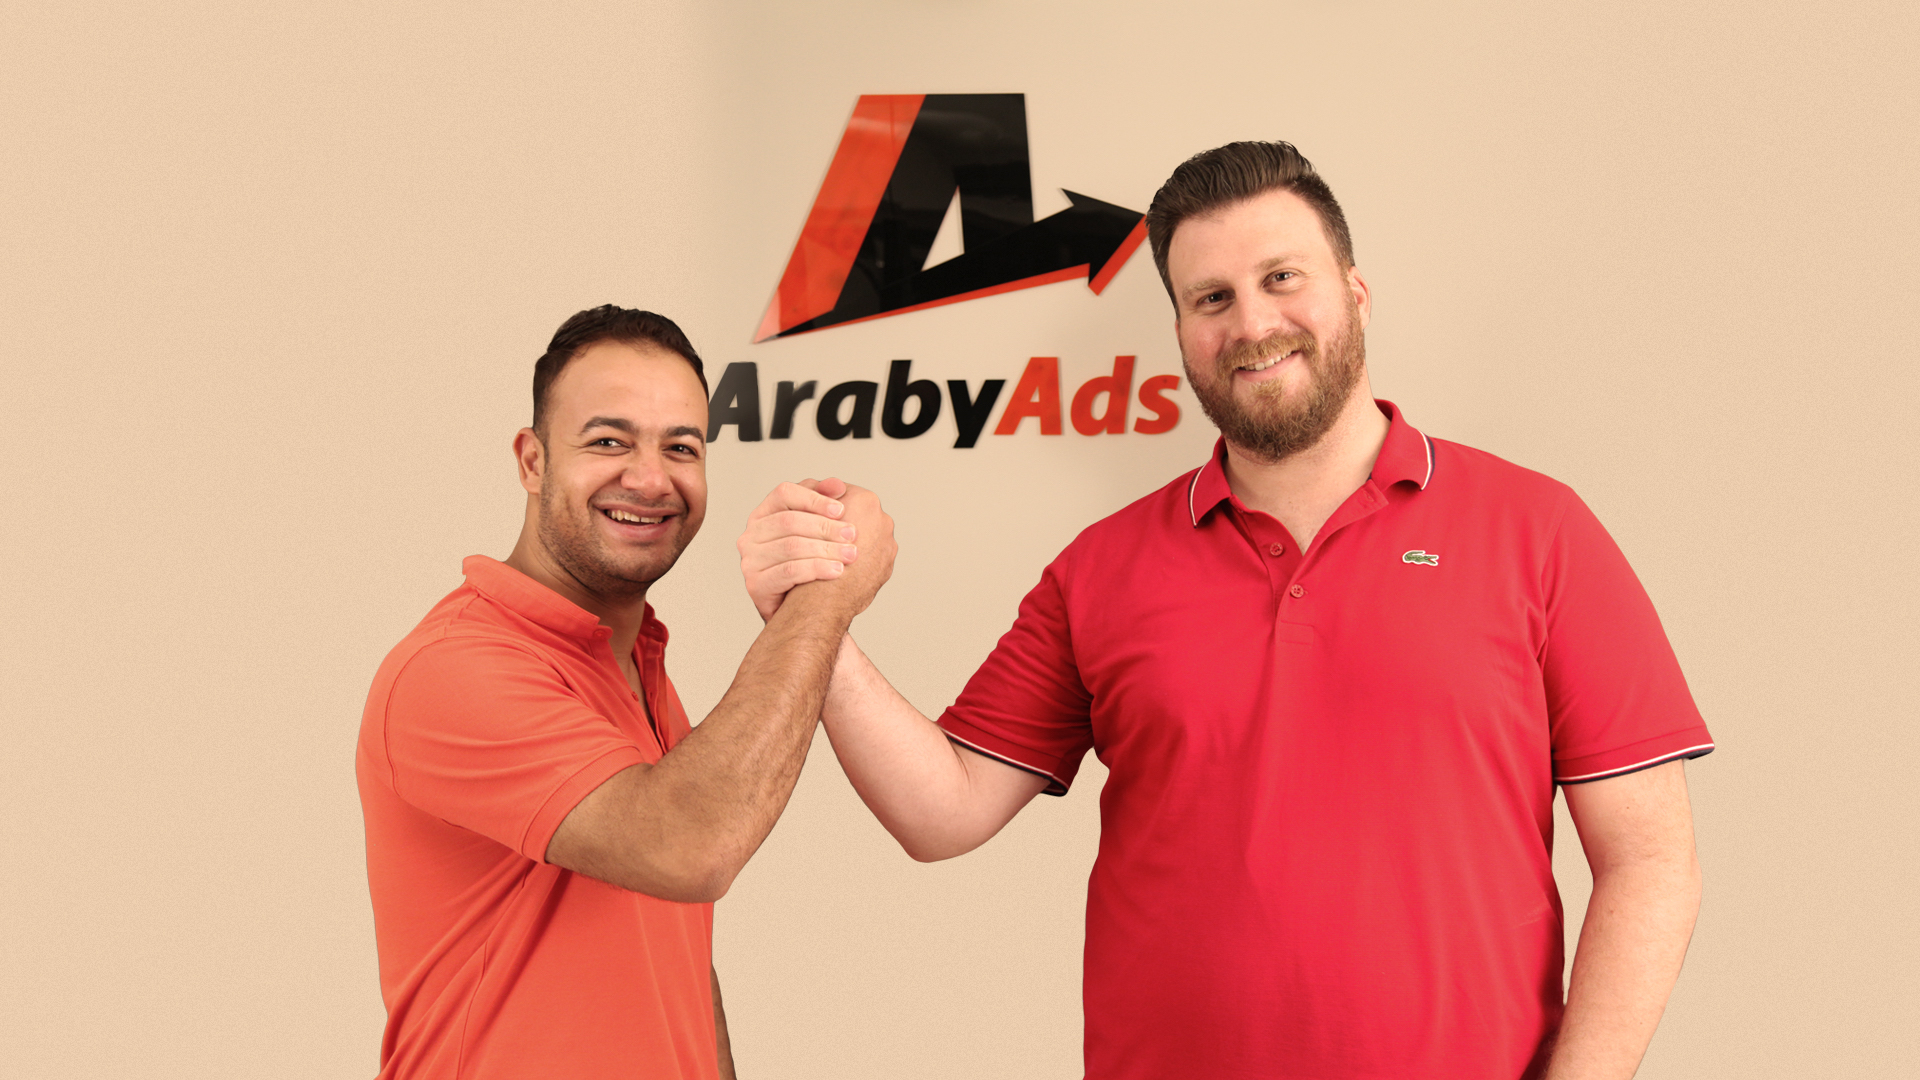 ArabyAds adds $6.5 million to its kitty after a successful Series A funding round